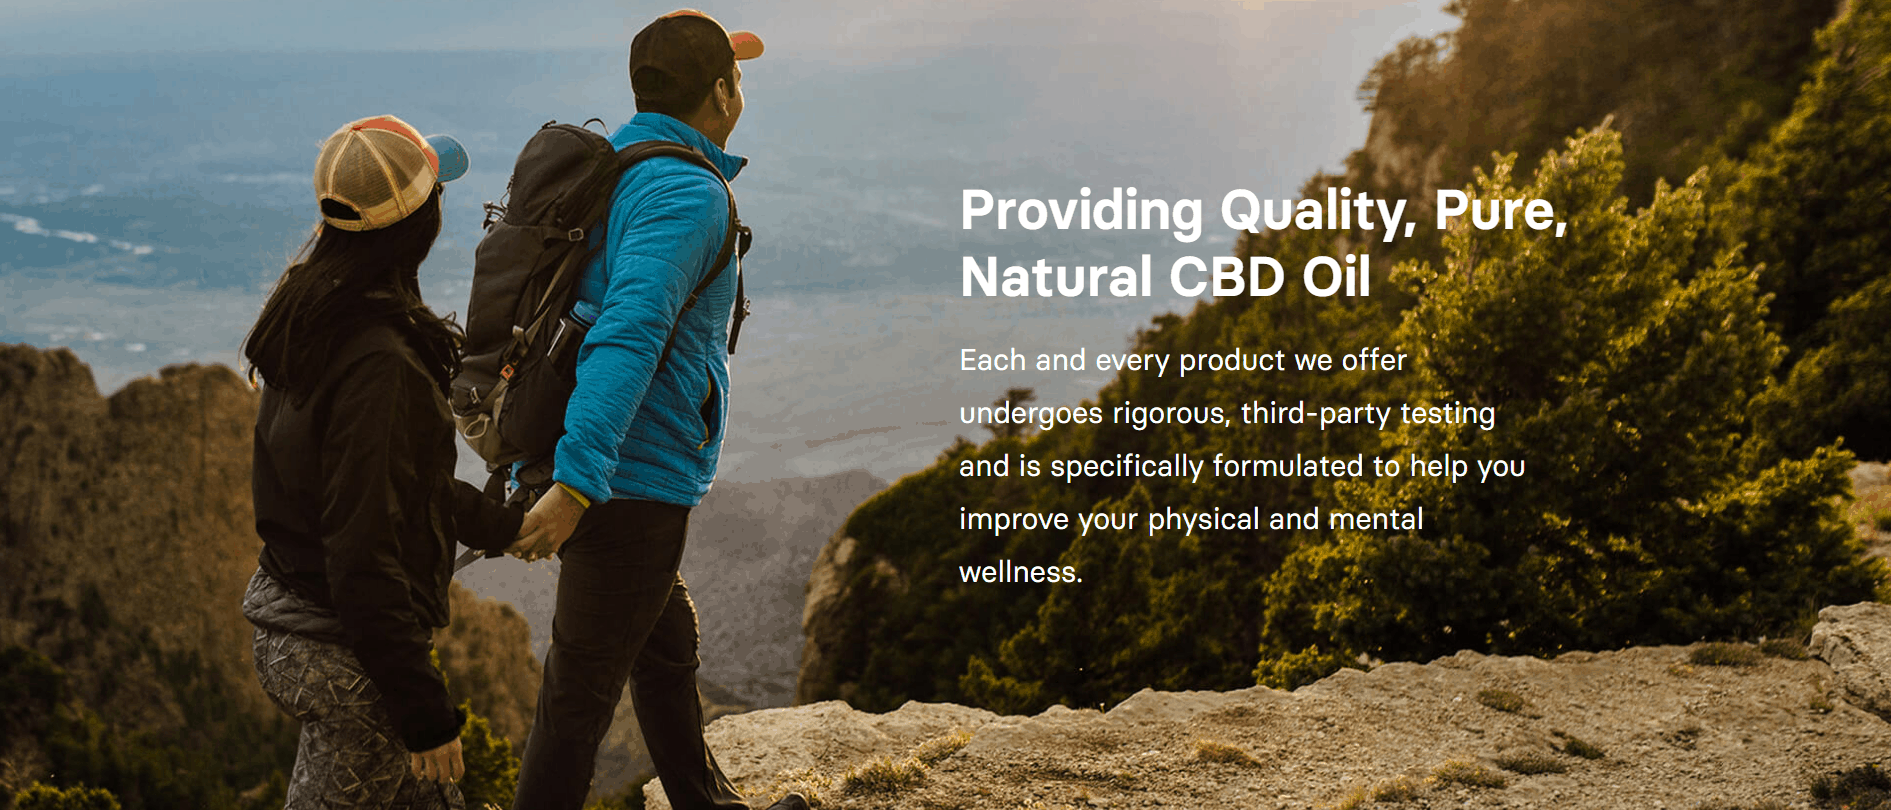 Foy CBD Coupons Get Best Products